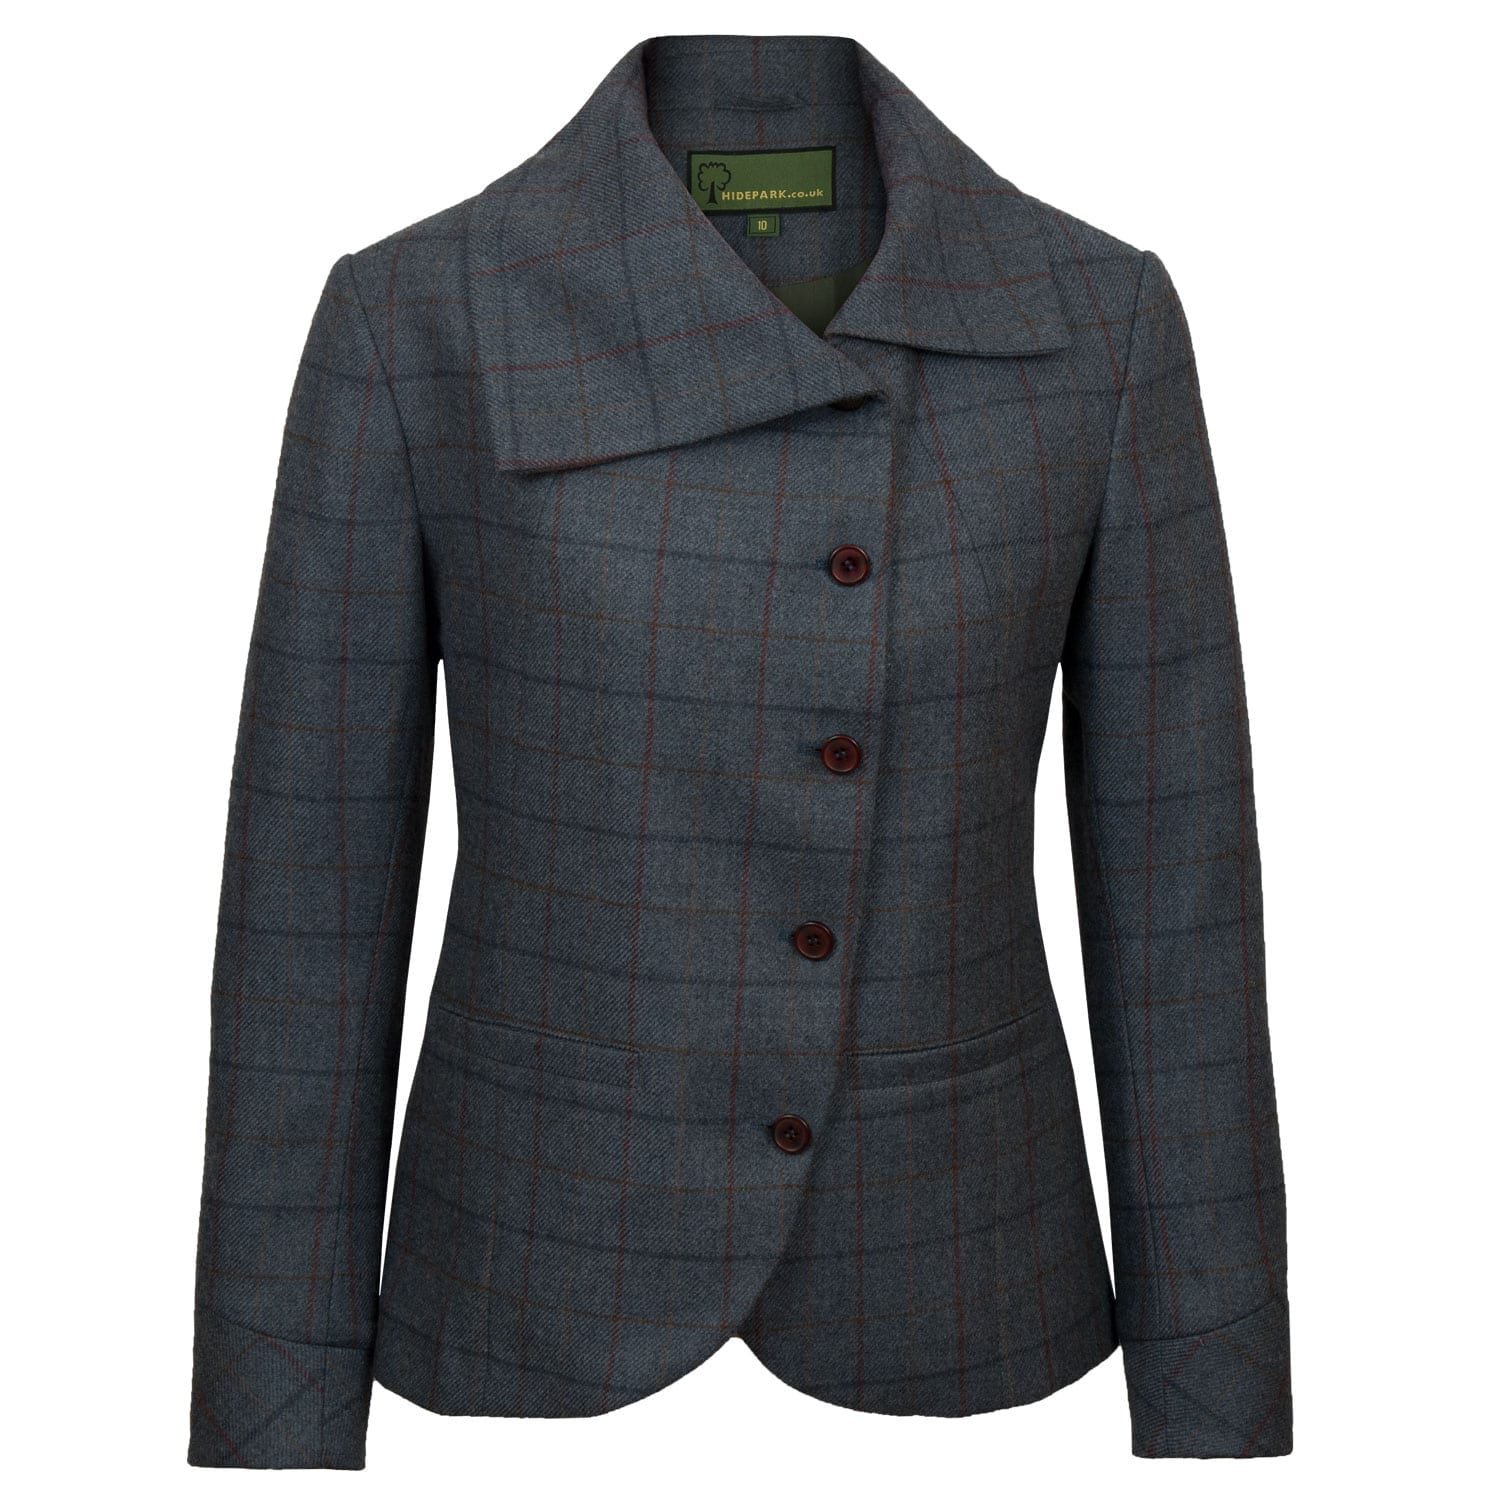 Womens blue tweed jacket Oban